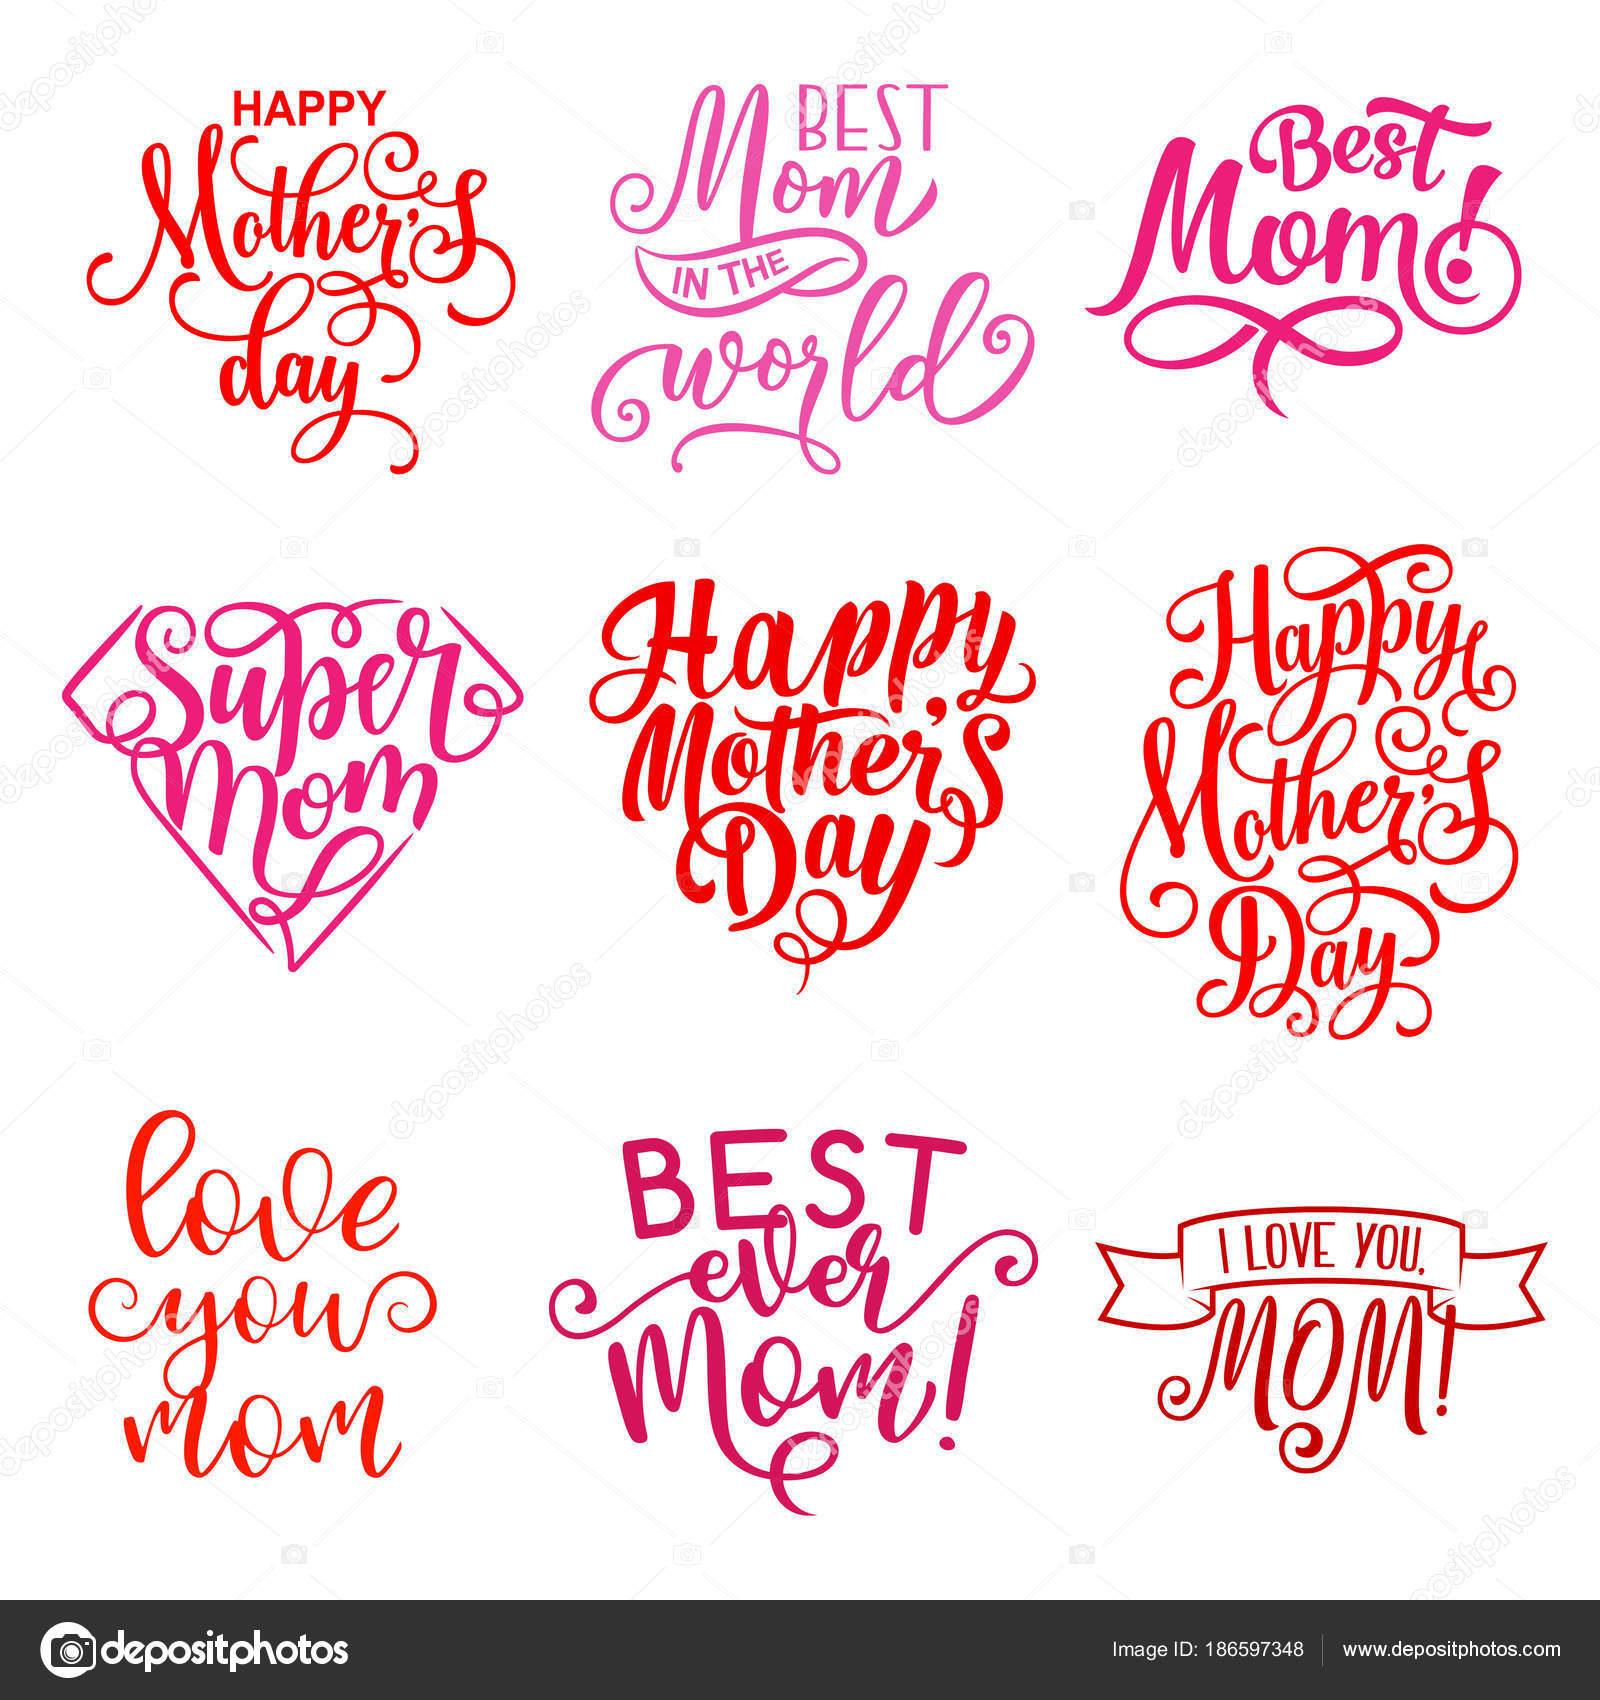 Vector mother day holiday greeting text icons stock vector vector mother day holiday greeting text icons stock vector m4hsunfo